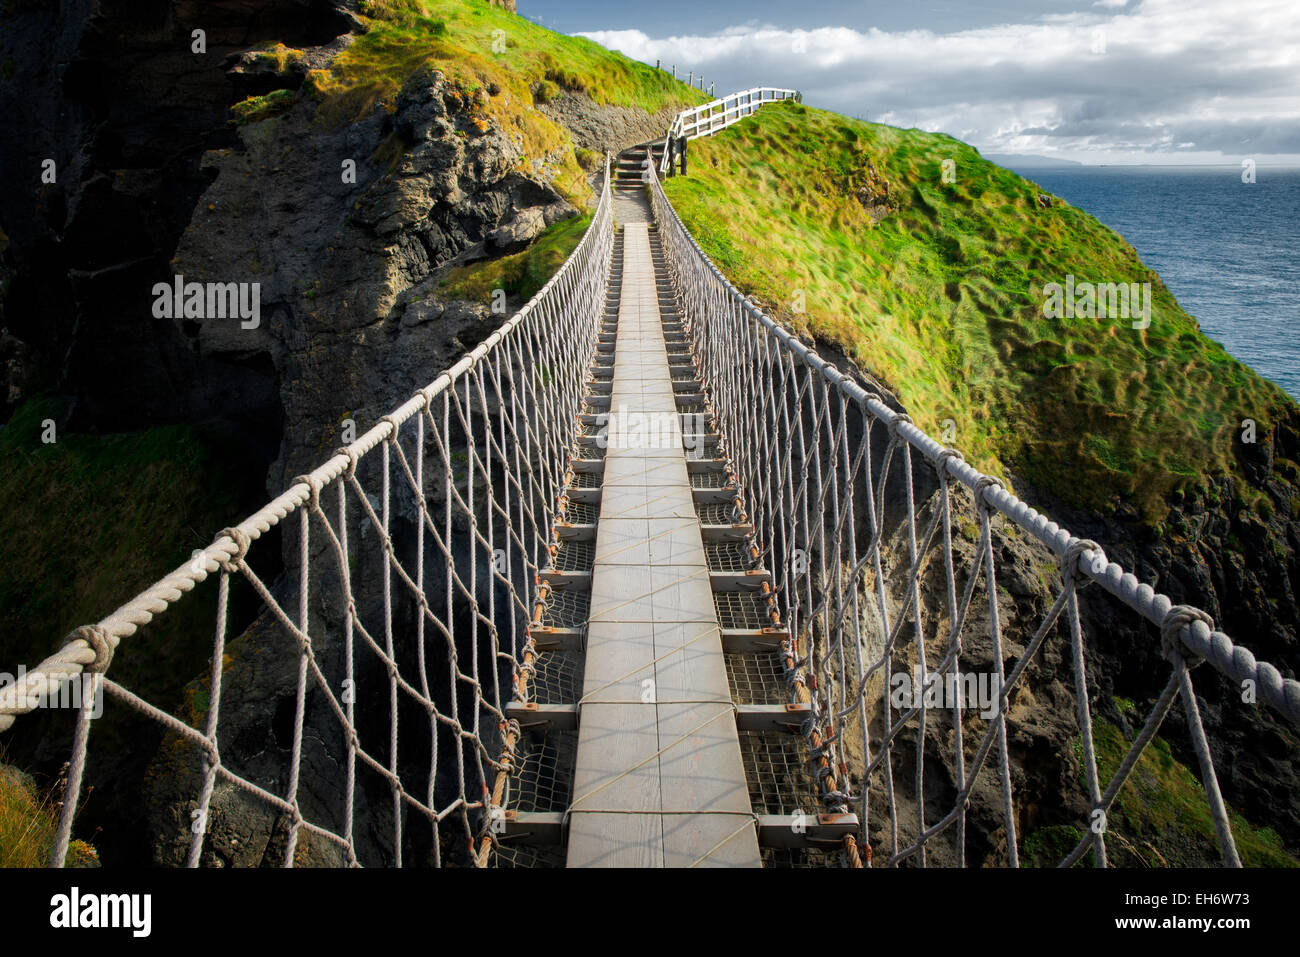 Carrick-a-Rede Rope Bridge. Northern Ireland - Stock Image